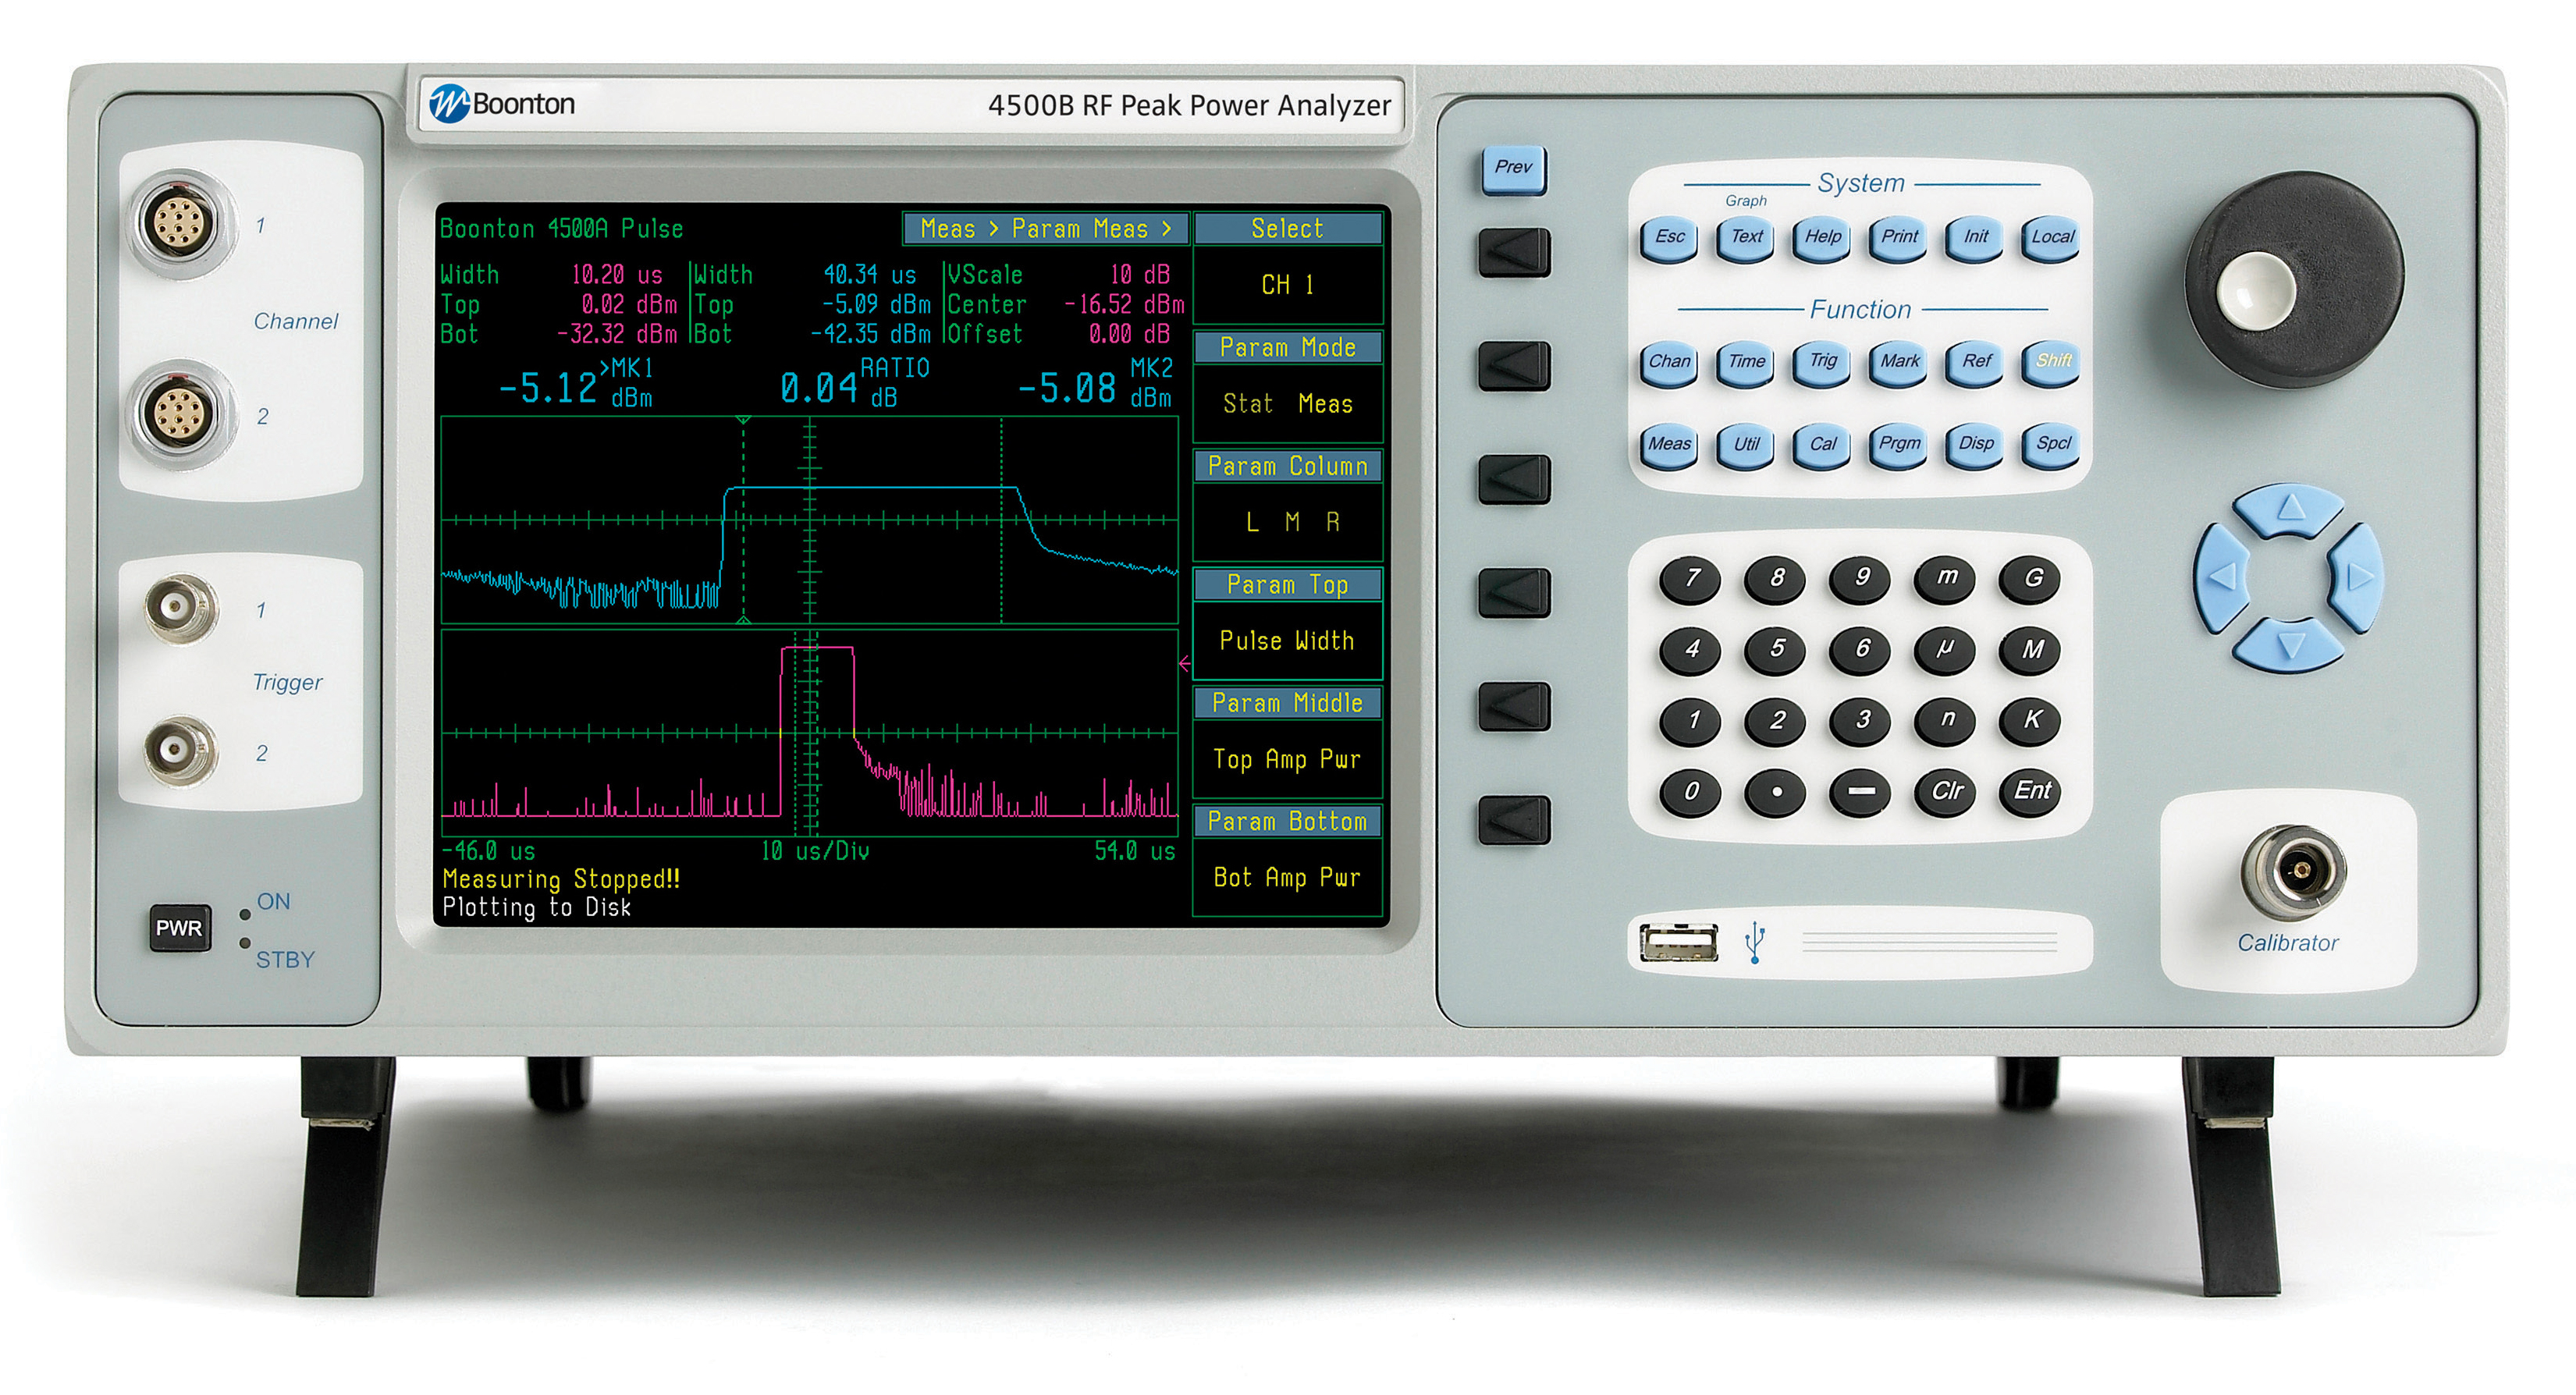 RF Peak Power Analyzer